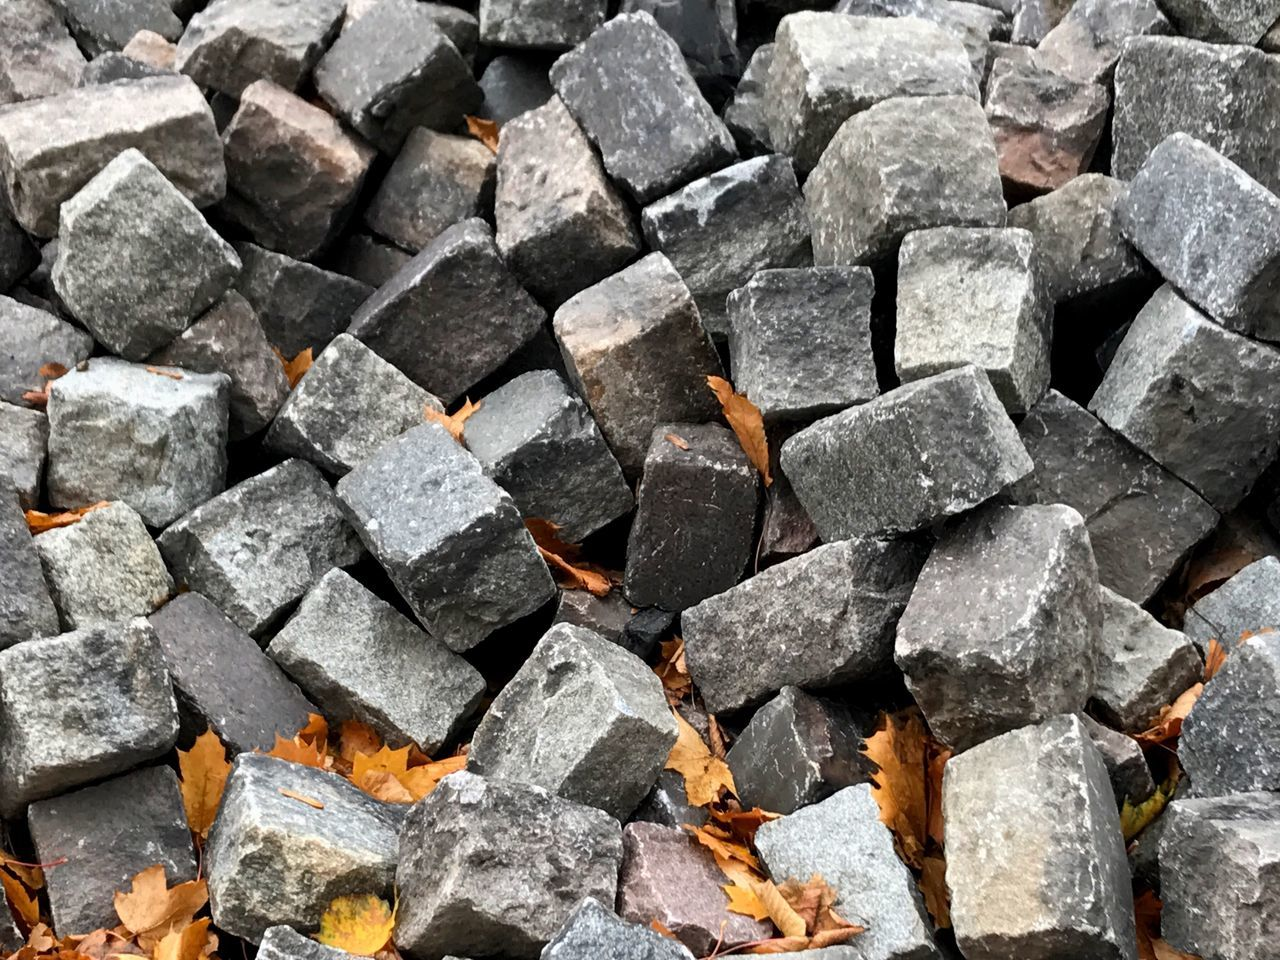 Stones Maximum Closeness Stones Grey Street Construction Autumn Geometric Shape Outdoors Berlin